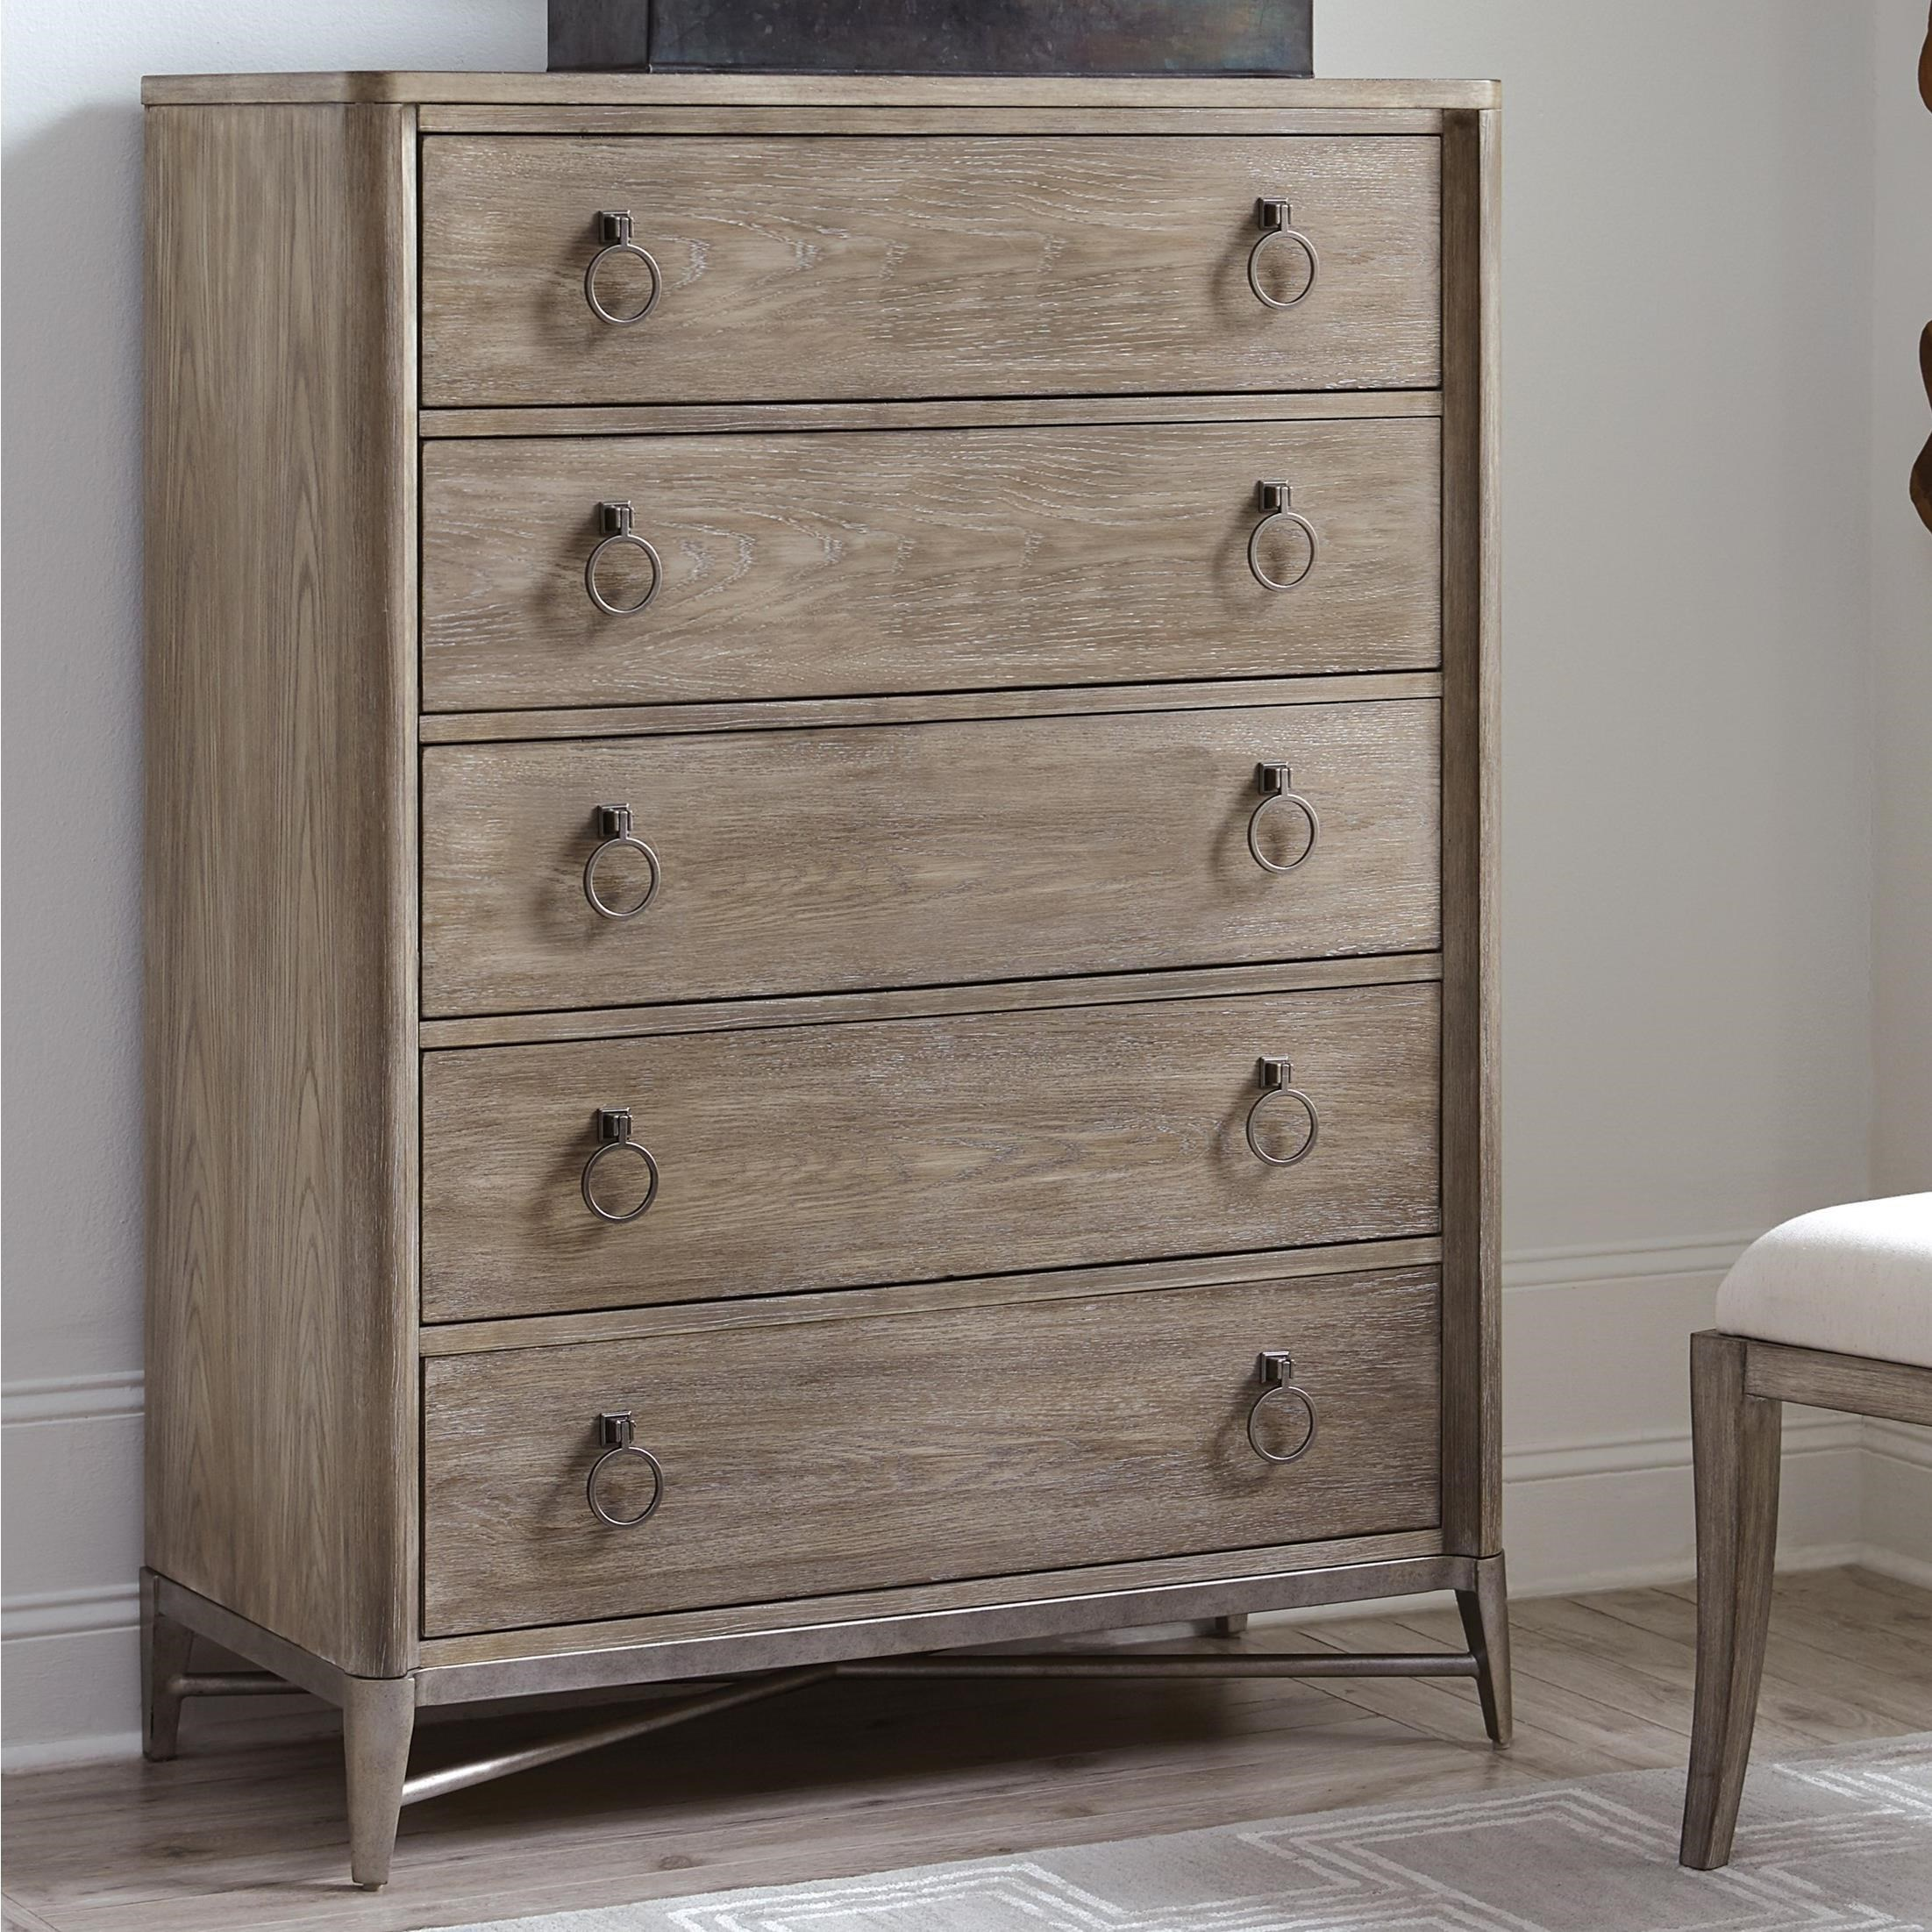 Riverside Furniture Sophie 5 Drawer Chest With Ring Pull Hardware